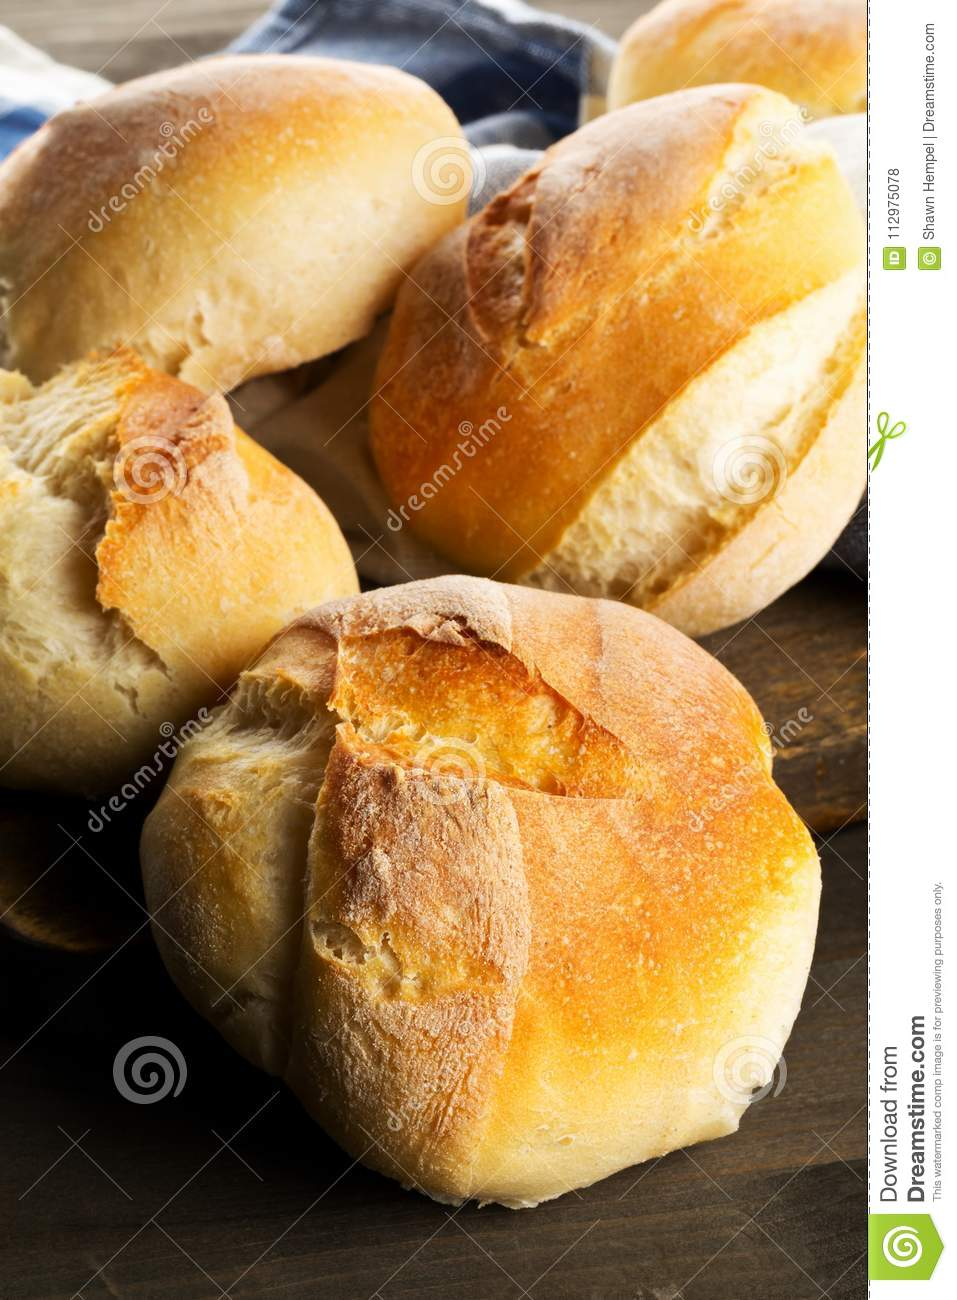 Bunch of whole, fresh baked wheat buns on dark wooden table